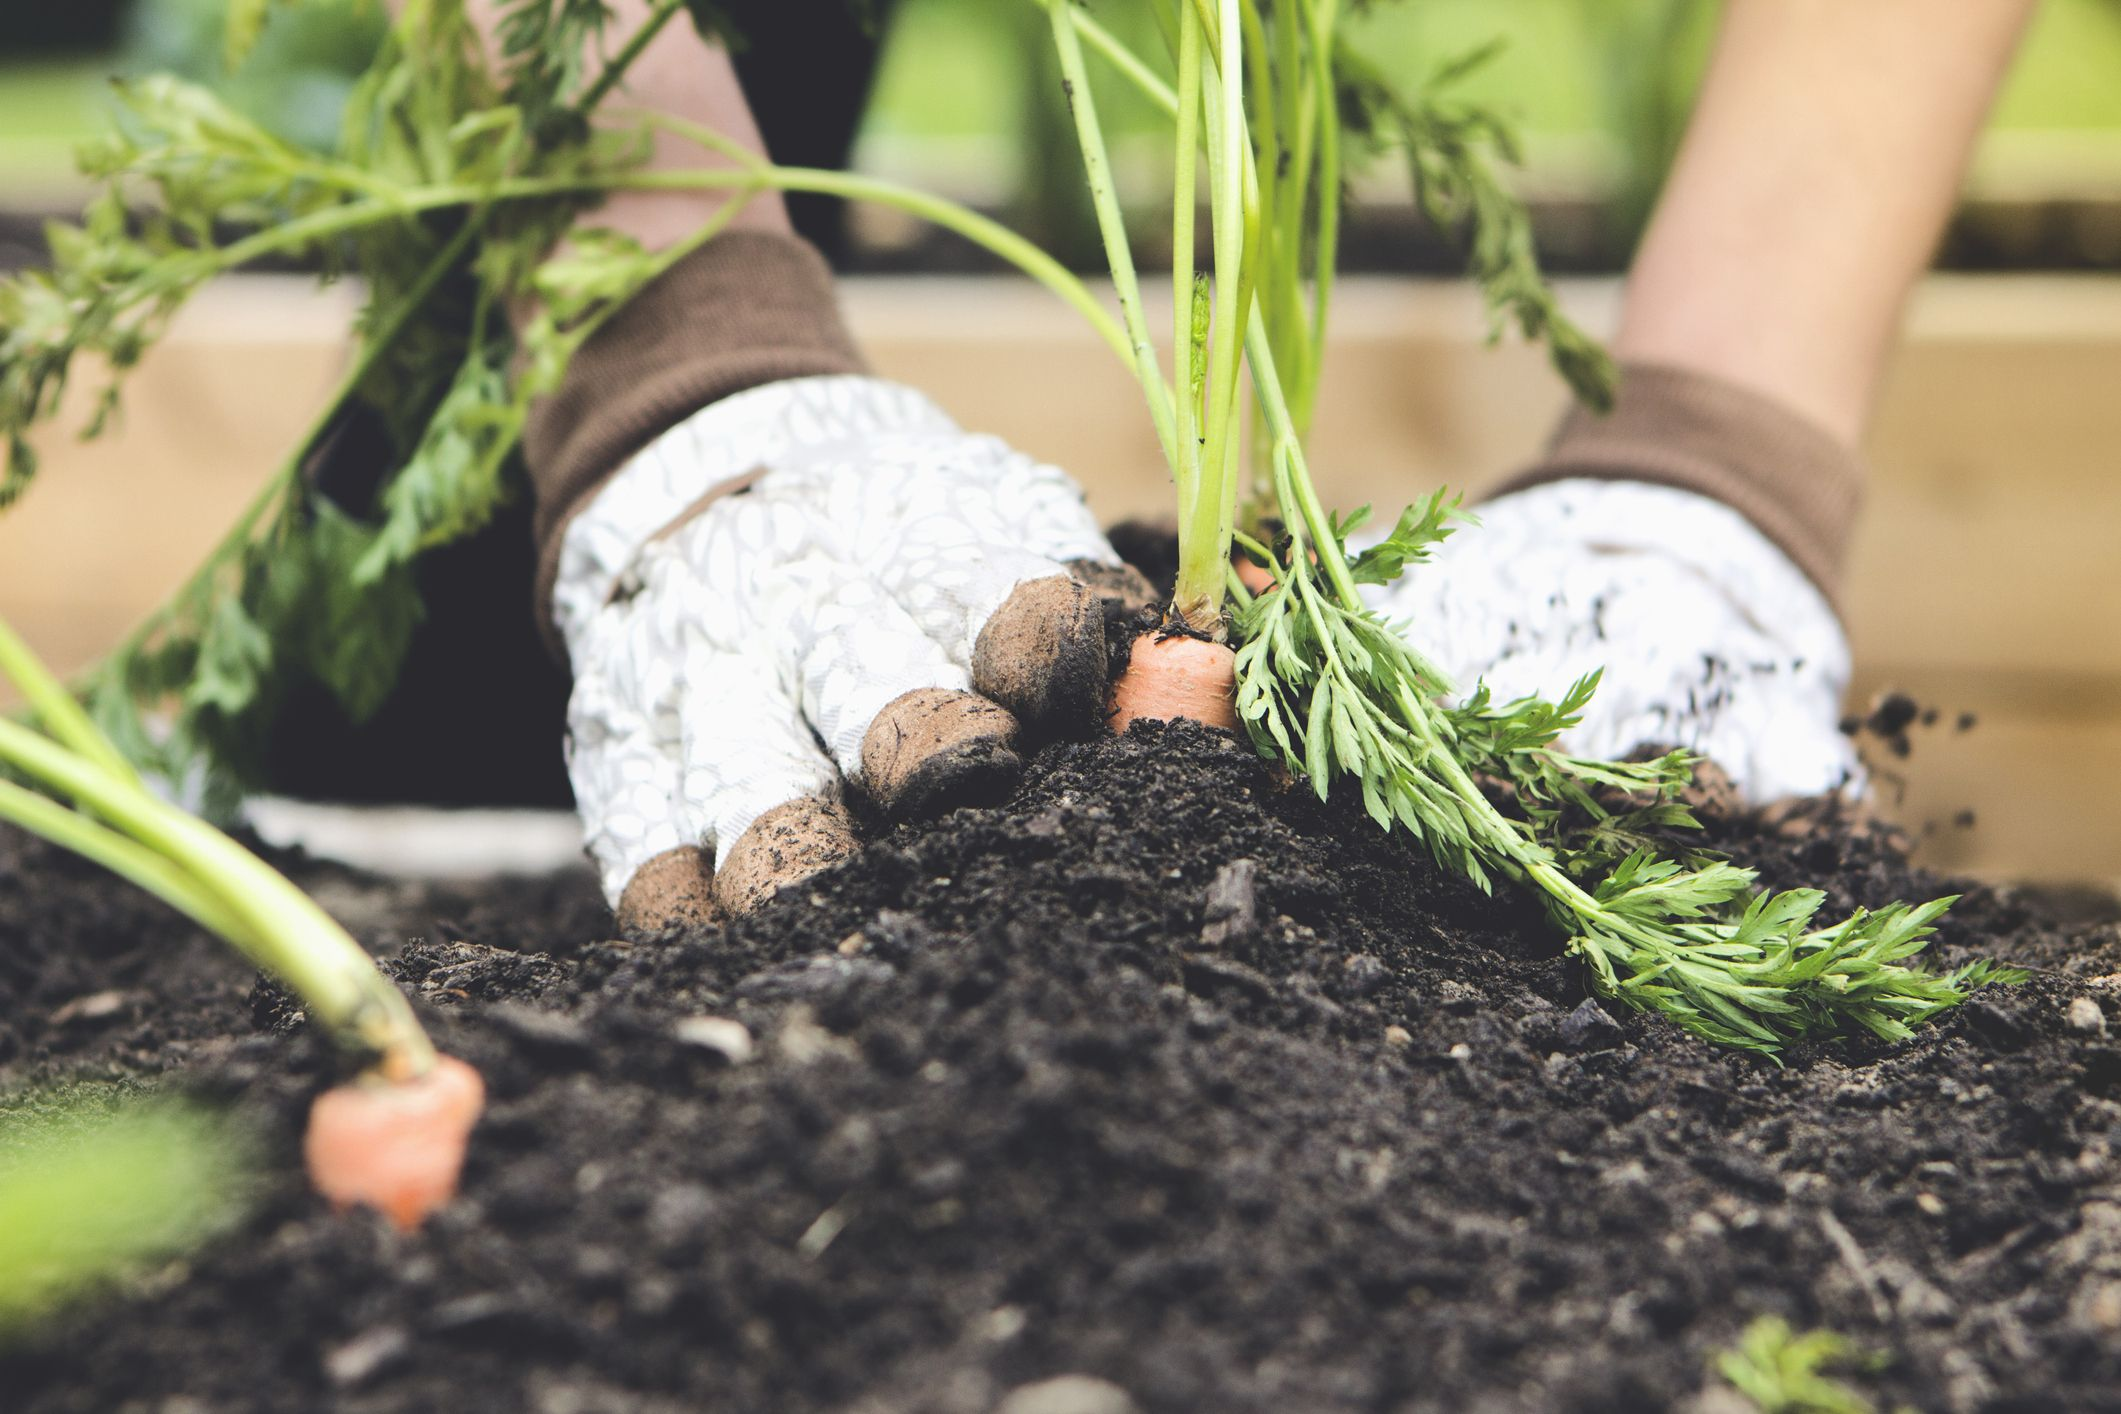 Gardening For Beginners: 10 Easy Garden Tasks To Get Started